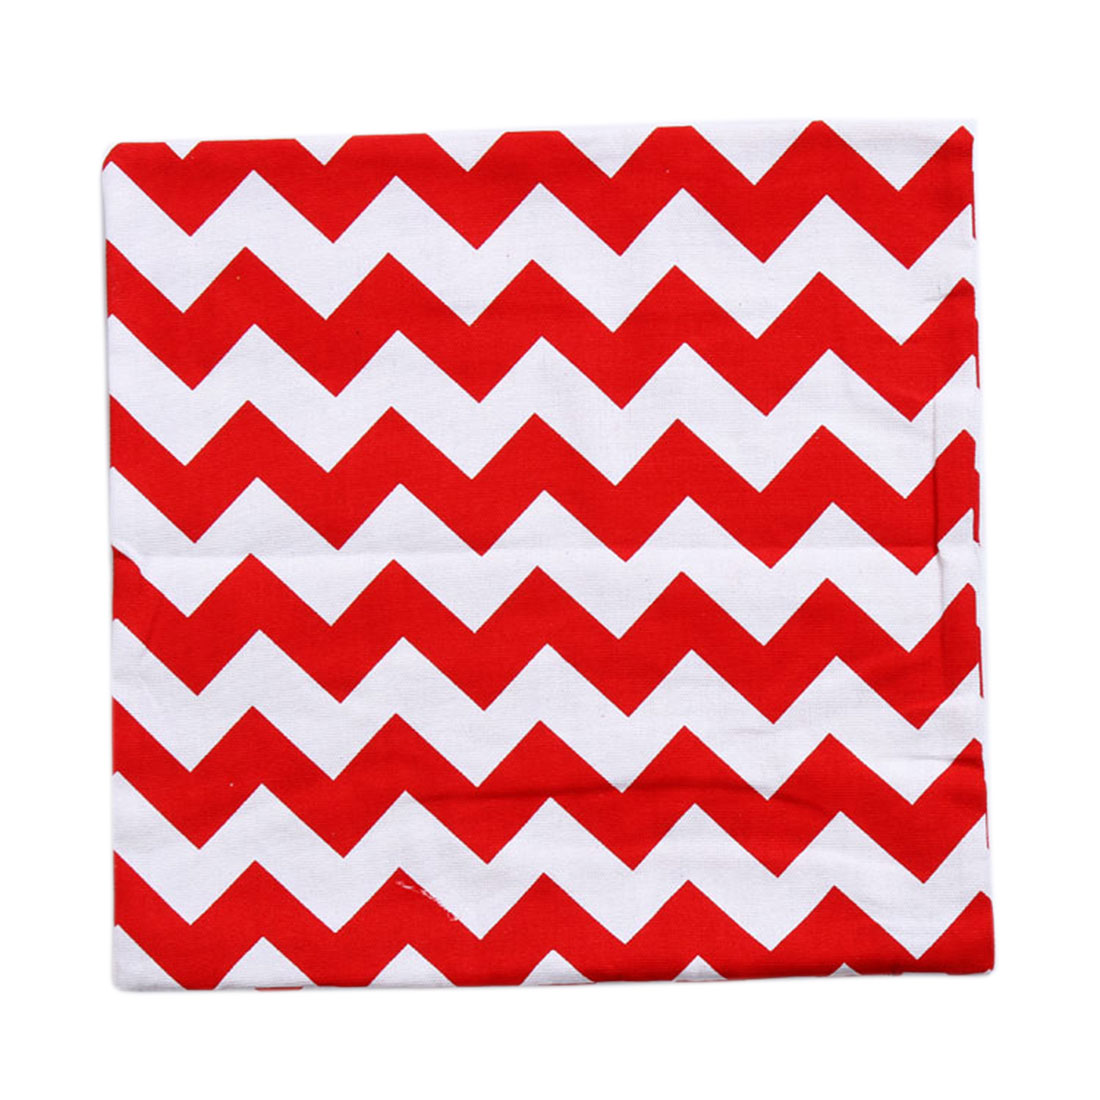 Piccocasa Sofa Bed Zigzag Pattern Throw Cushion Pillow Cover Red White 45 x 45cm